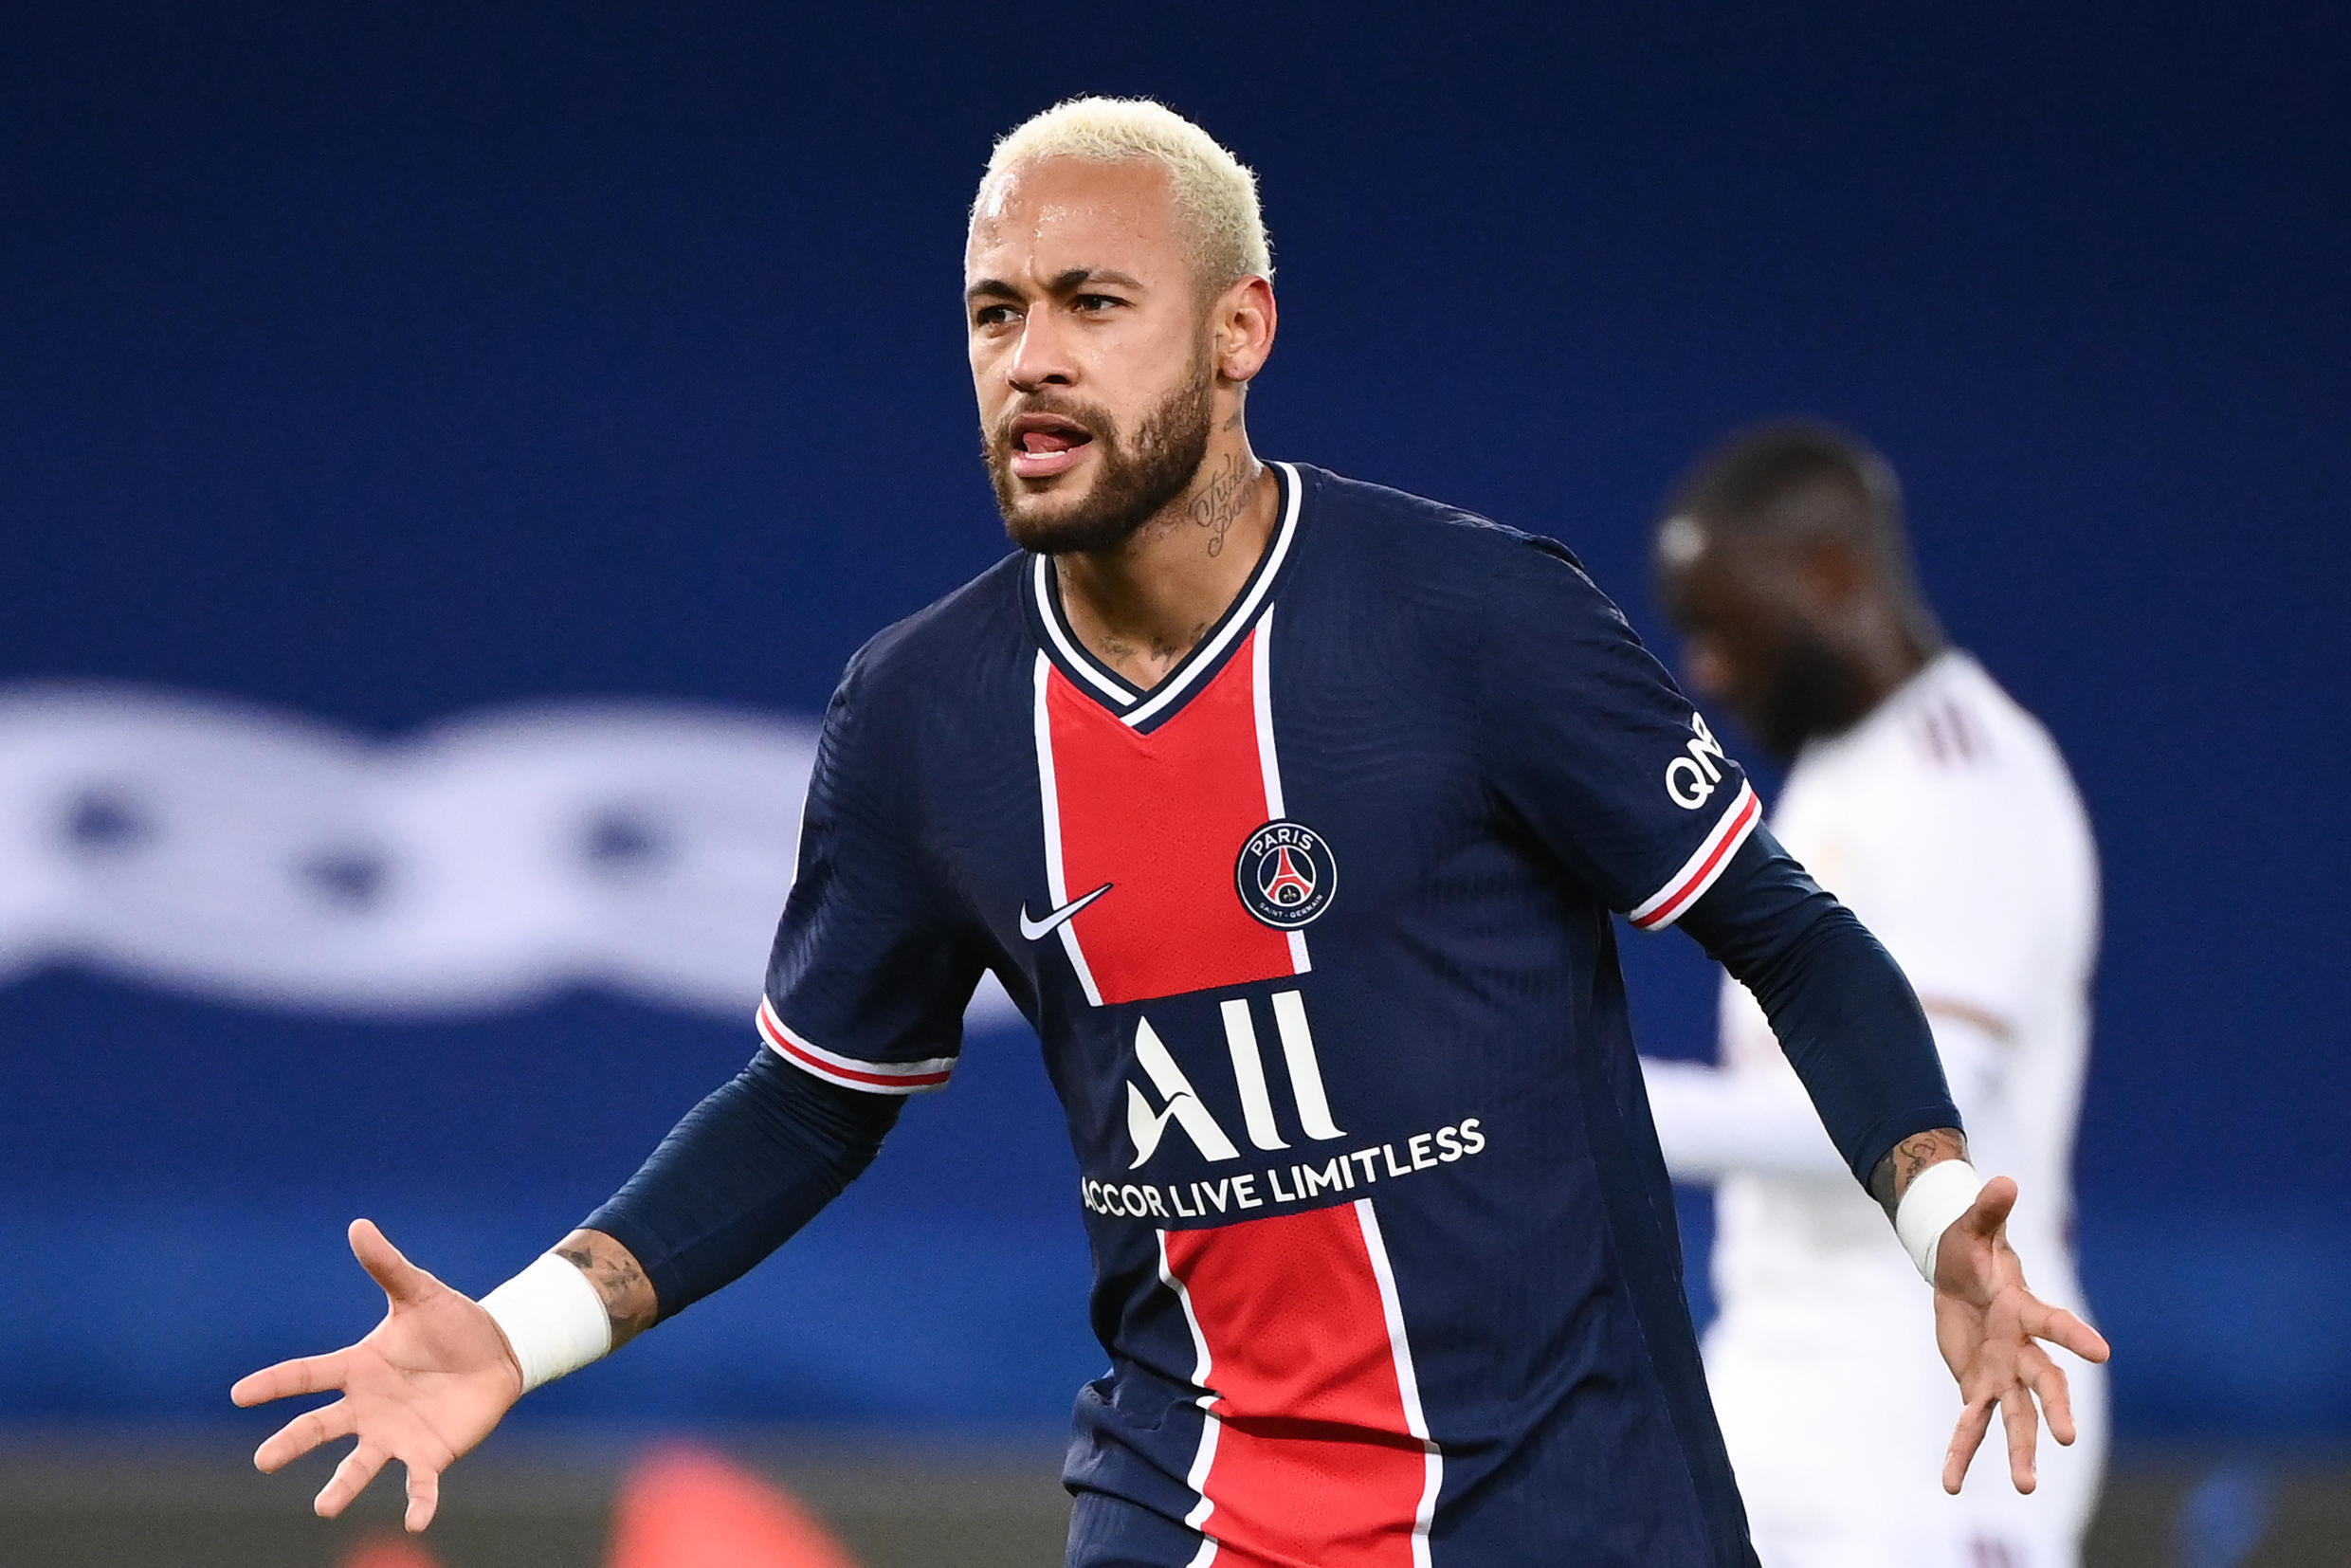 Neymar and Paris Saint-Germain are Ligue 1's big draw for broadcasters